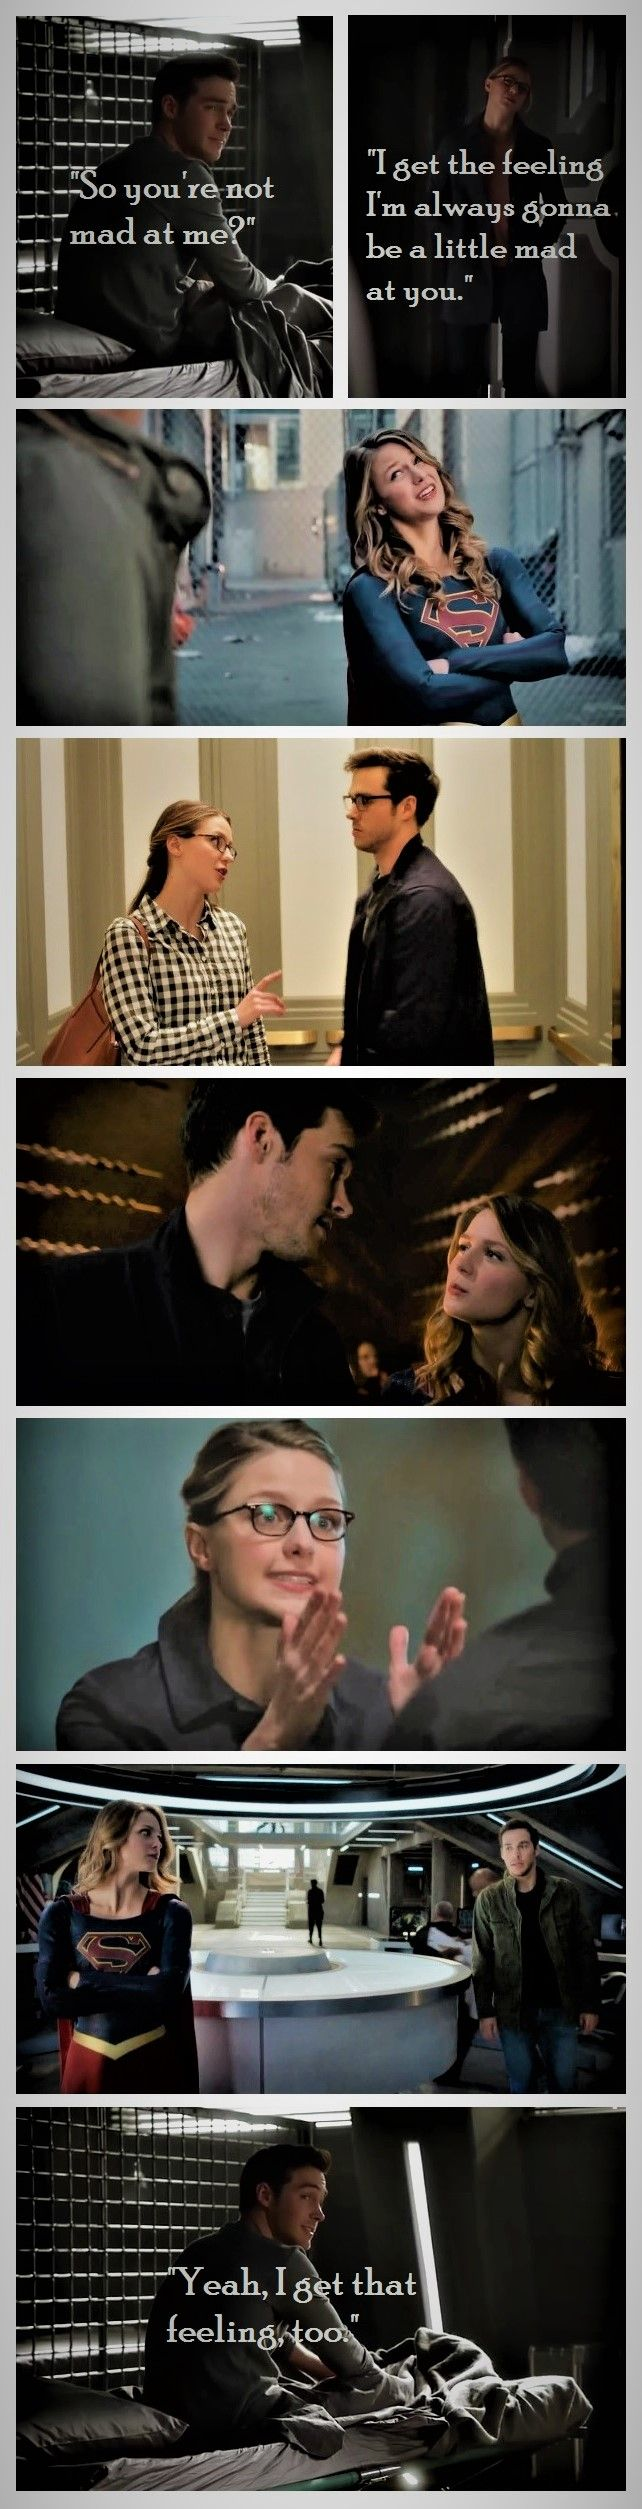 Kara and Mon-El never fail to entertain me. I love that his character stretches hers in ways no one else has/shakes up her perfect, boring routine, and she keeps him honest <3 |TV Shows||CW||#Supergirl edit||Season 2||2x05||2x06||2x09||2x10||Kara x Mon-El||#Karamel||Kara Danvers||Melissa Benoist||Chris Wood|